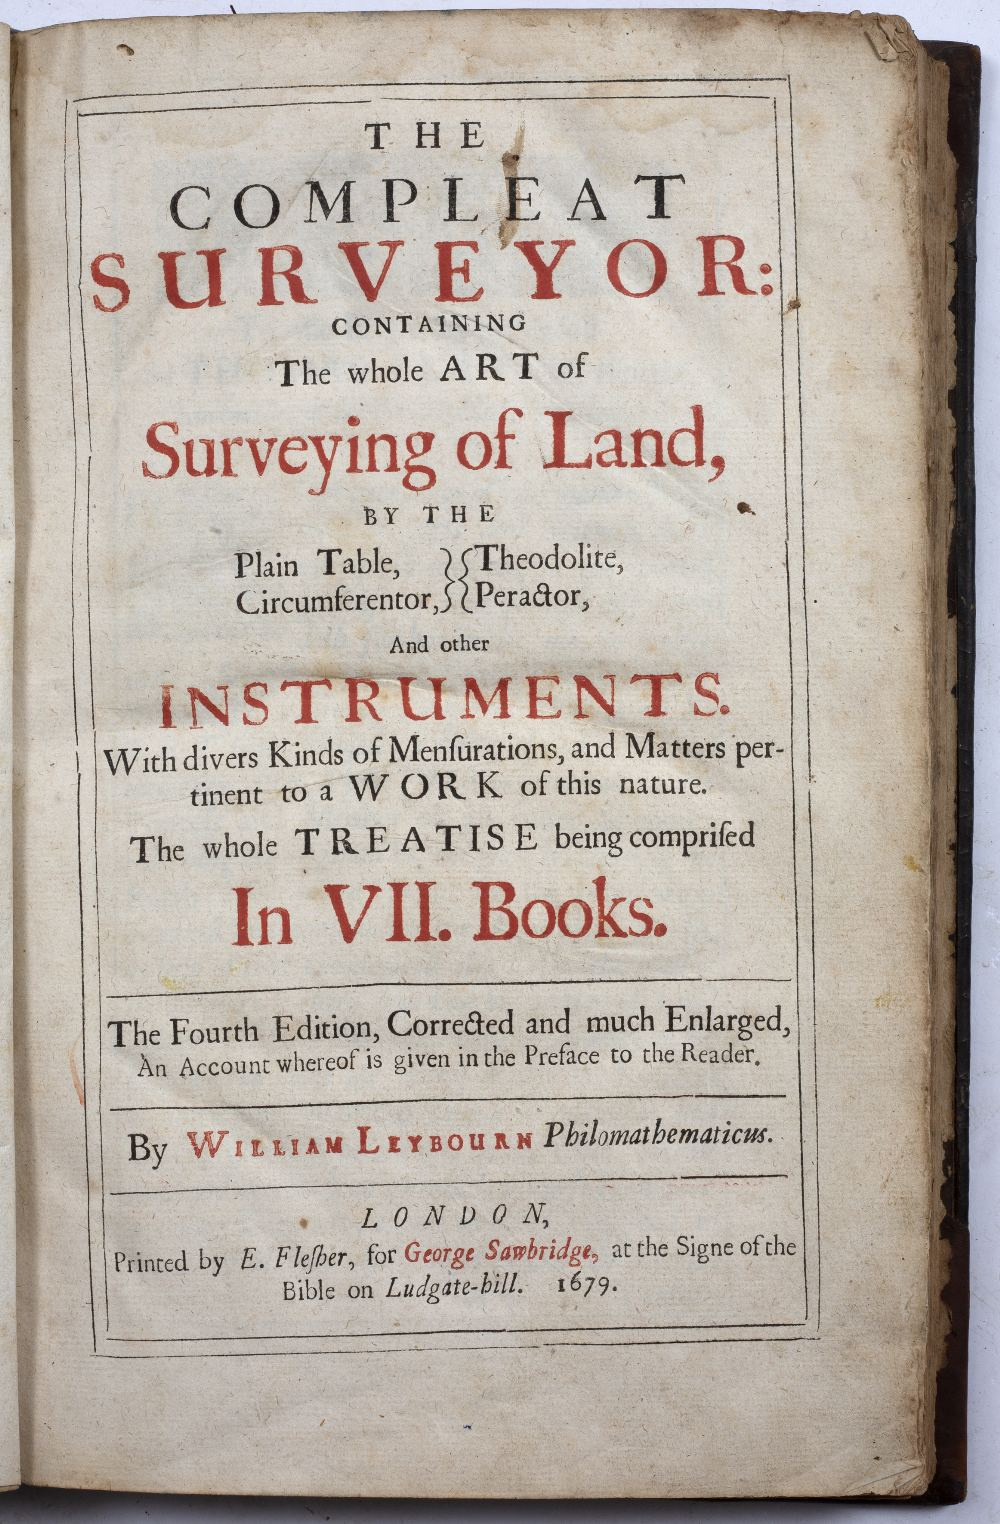 LEYBOURN, William, Philomathematicus, 'The Compleat Surveyor'. Seven books in one volume, numerous